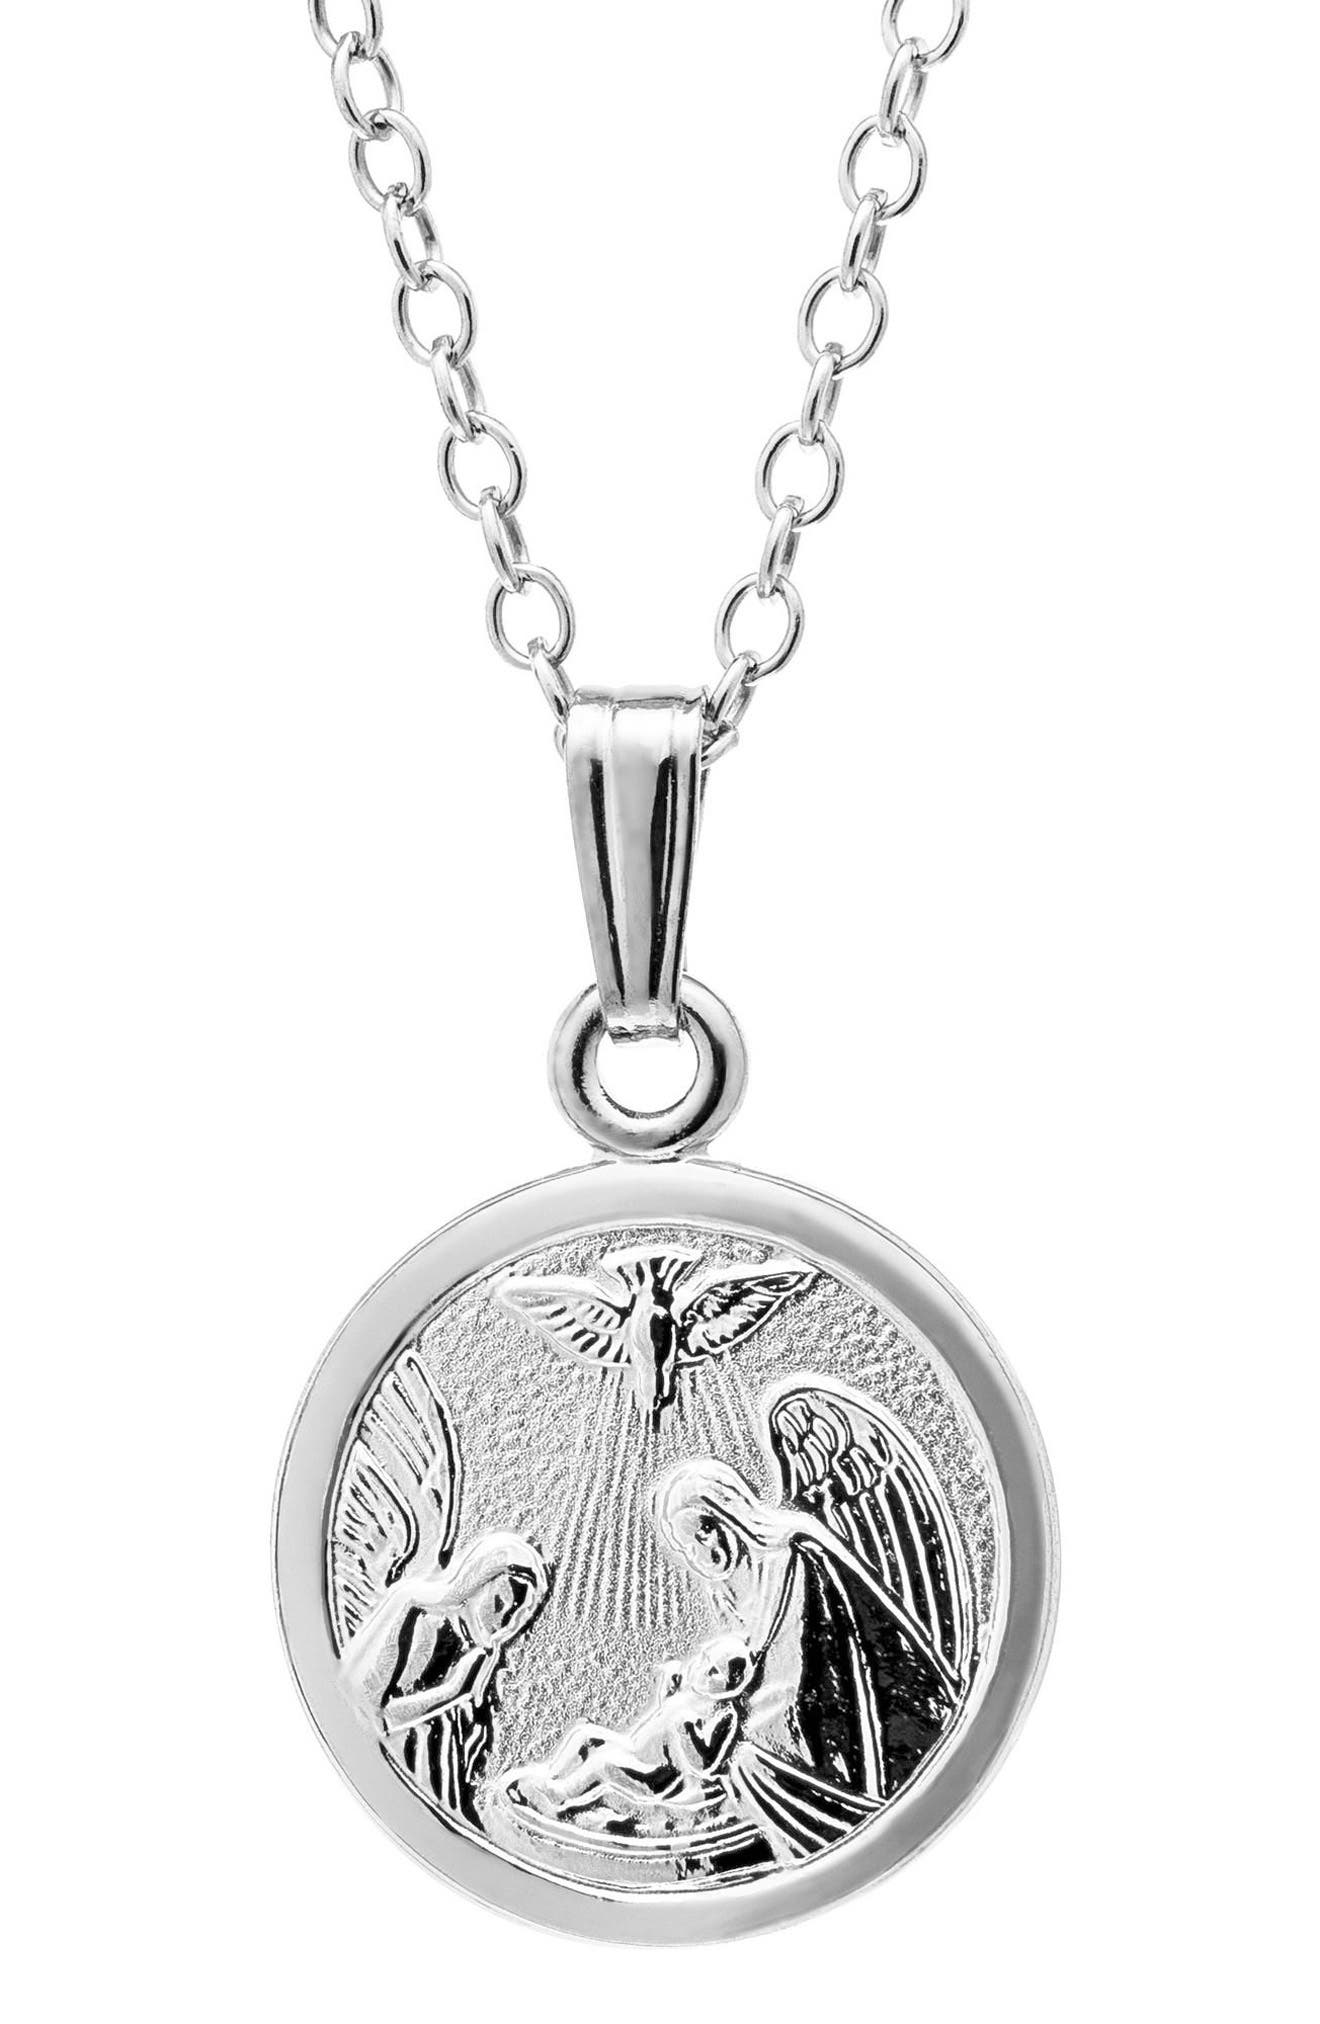 heart silver root gifts and hallmark jewelry baptism pendant in source sterling image necklace fashion accessories